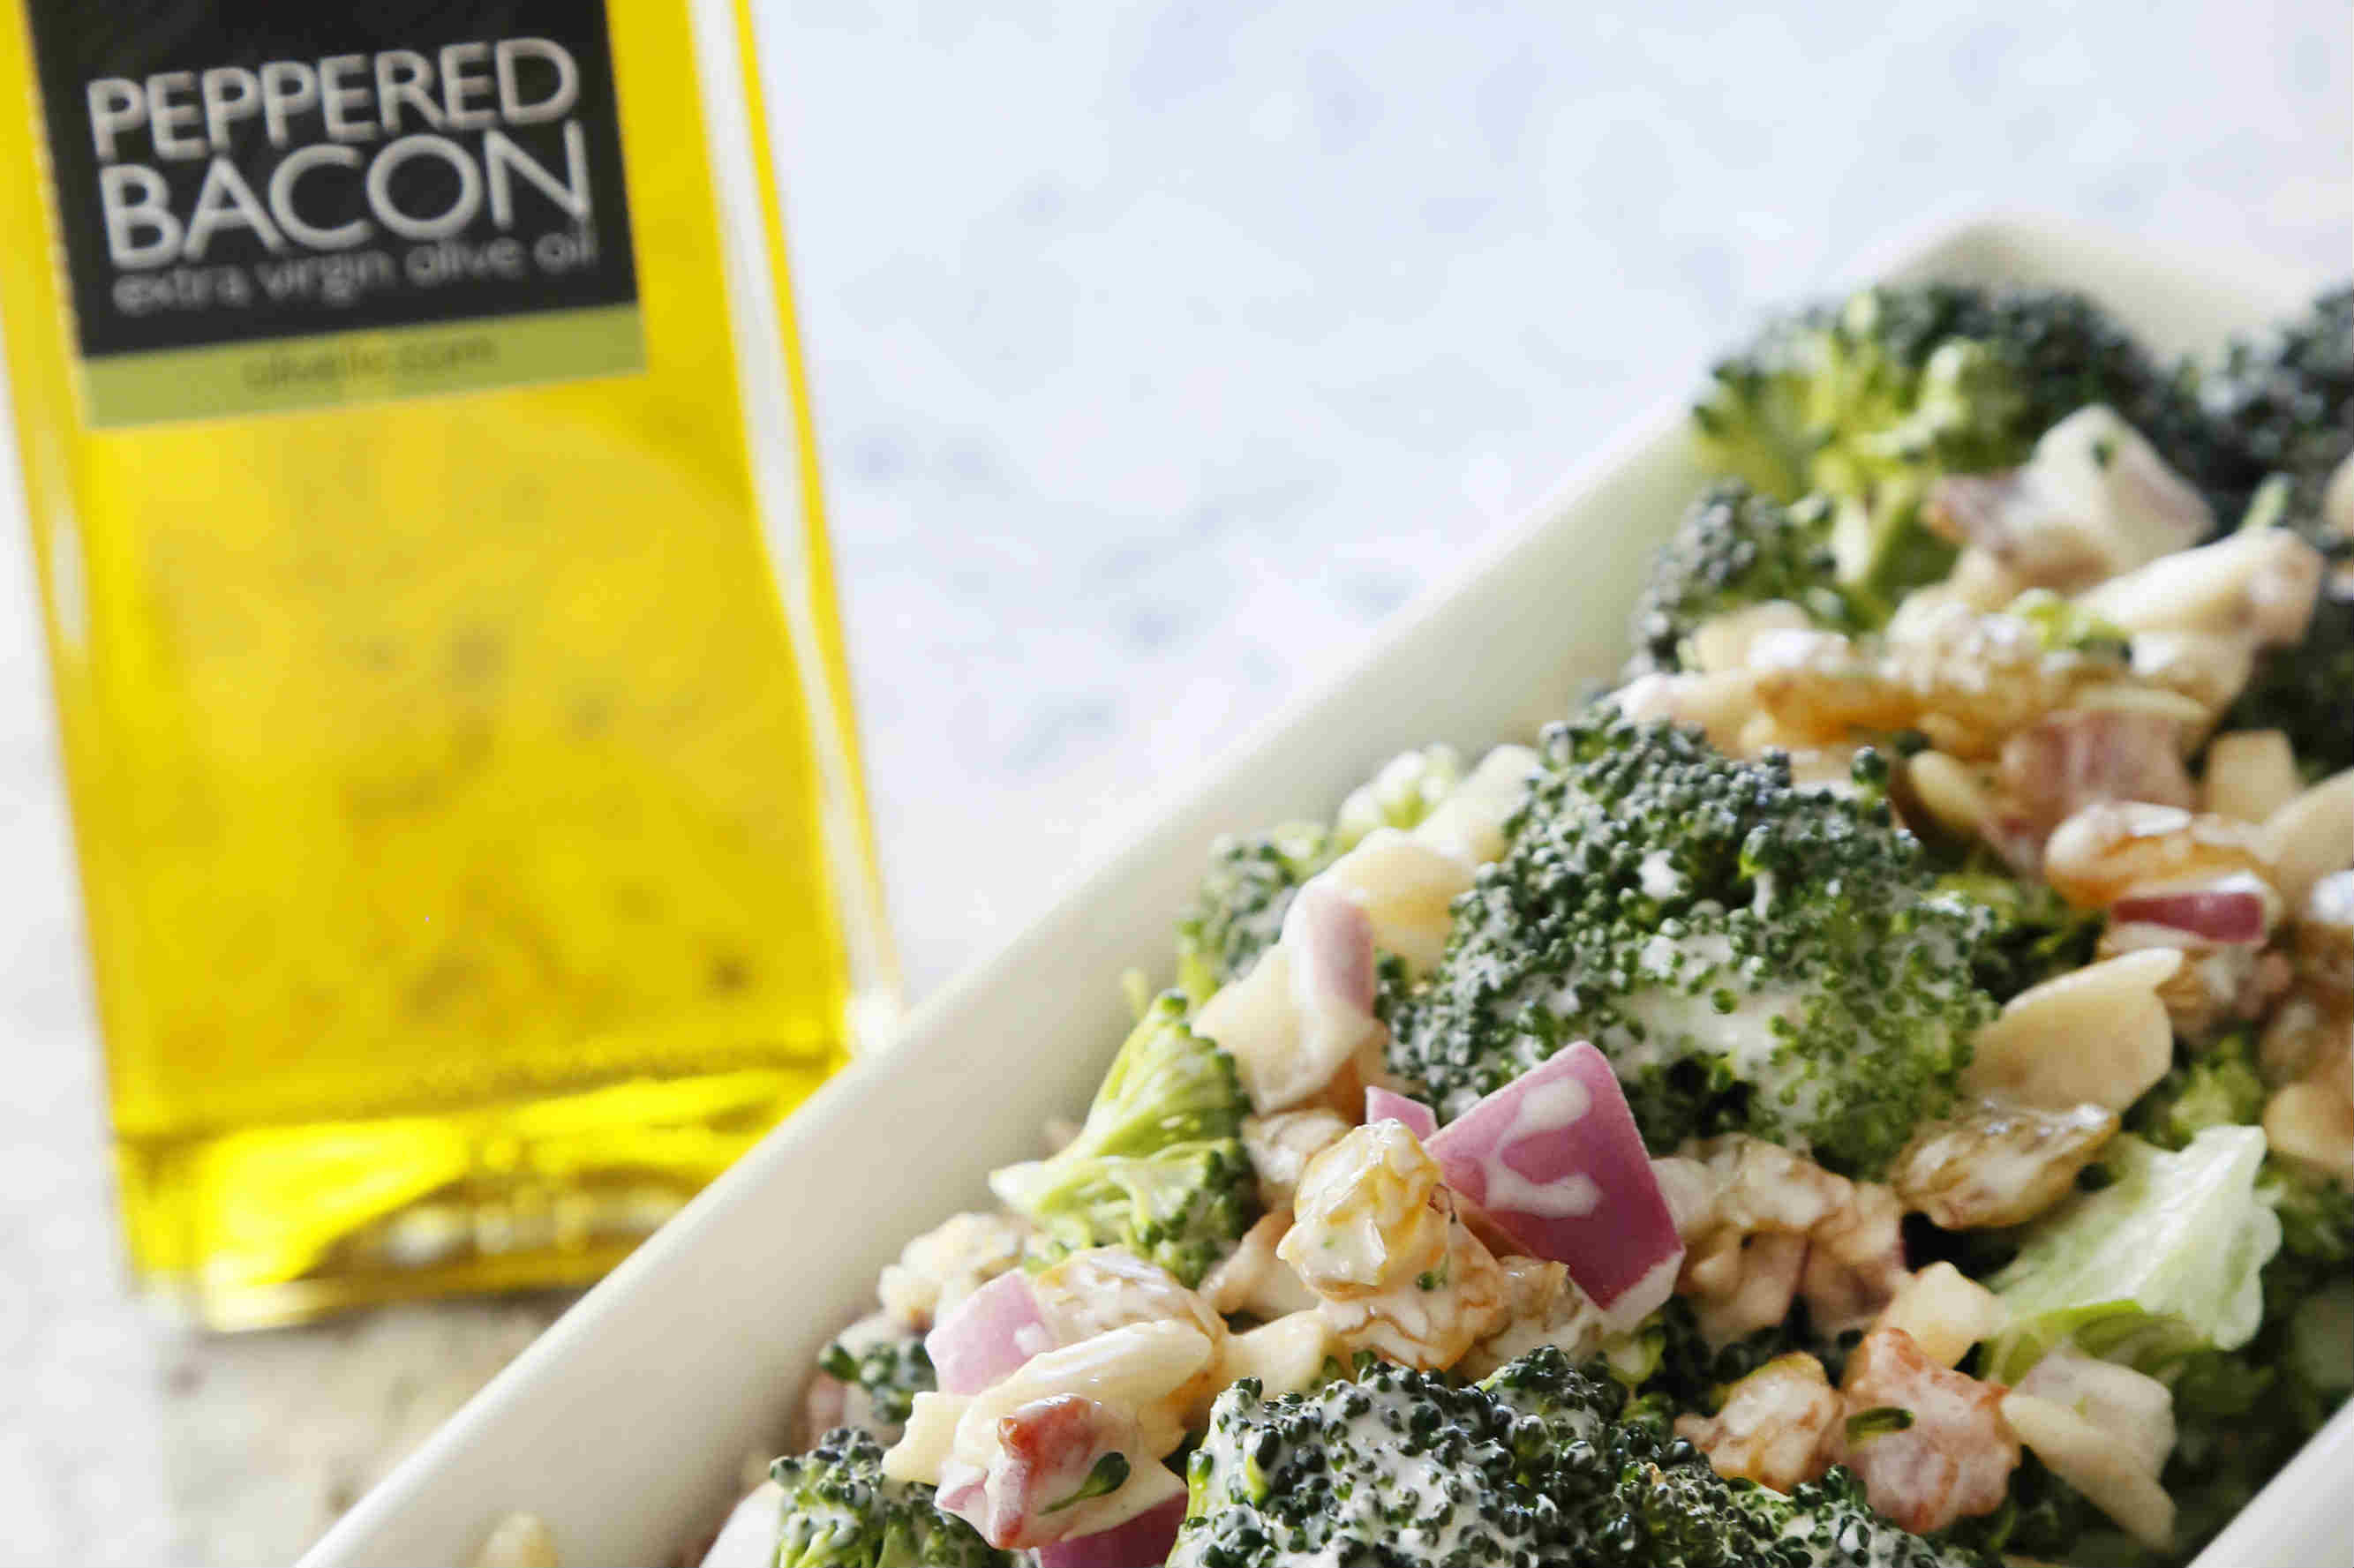 3x2_Creamy Bacon & Broccoli Salad_195KB.jpg